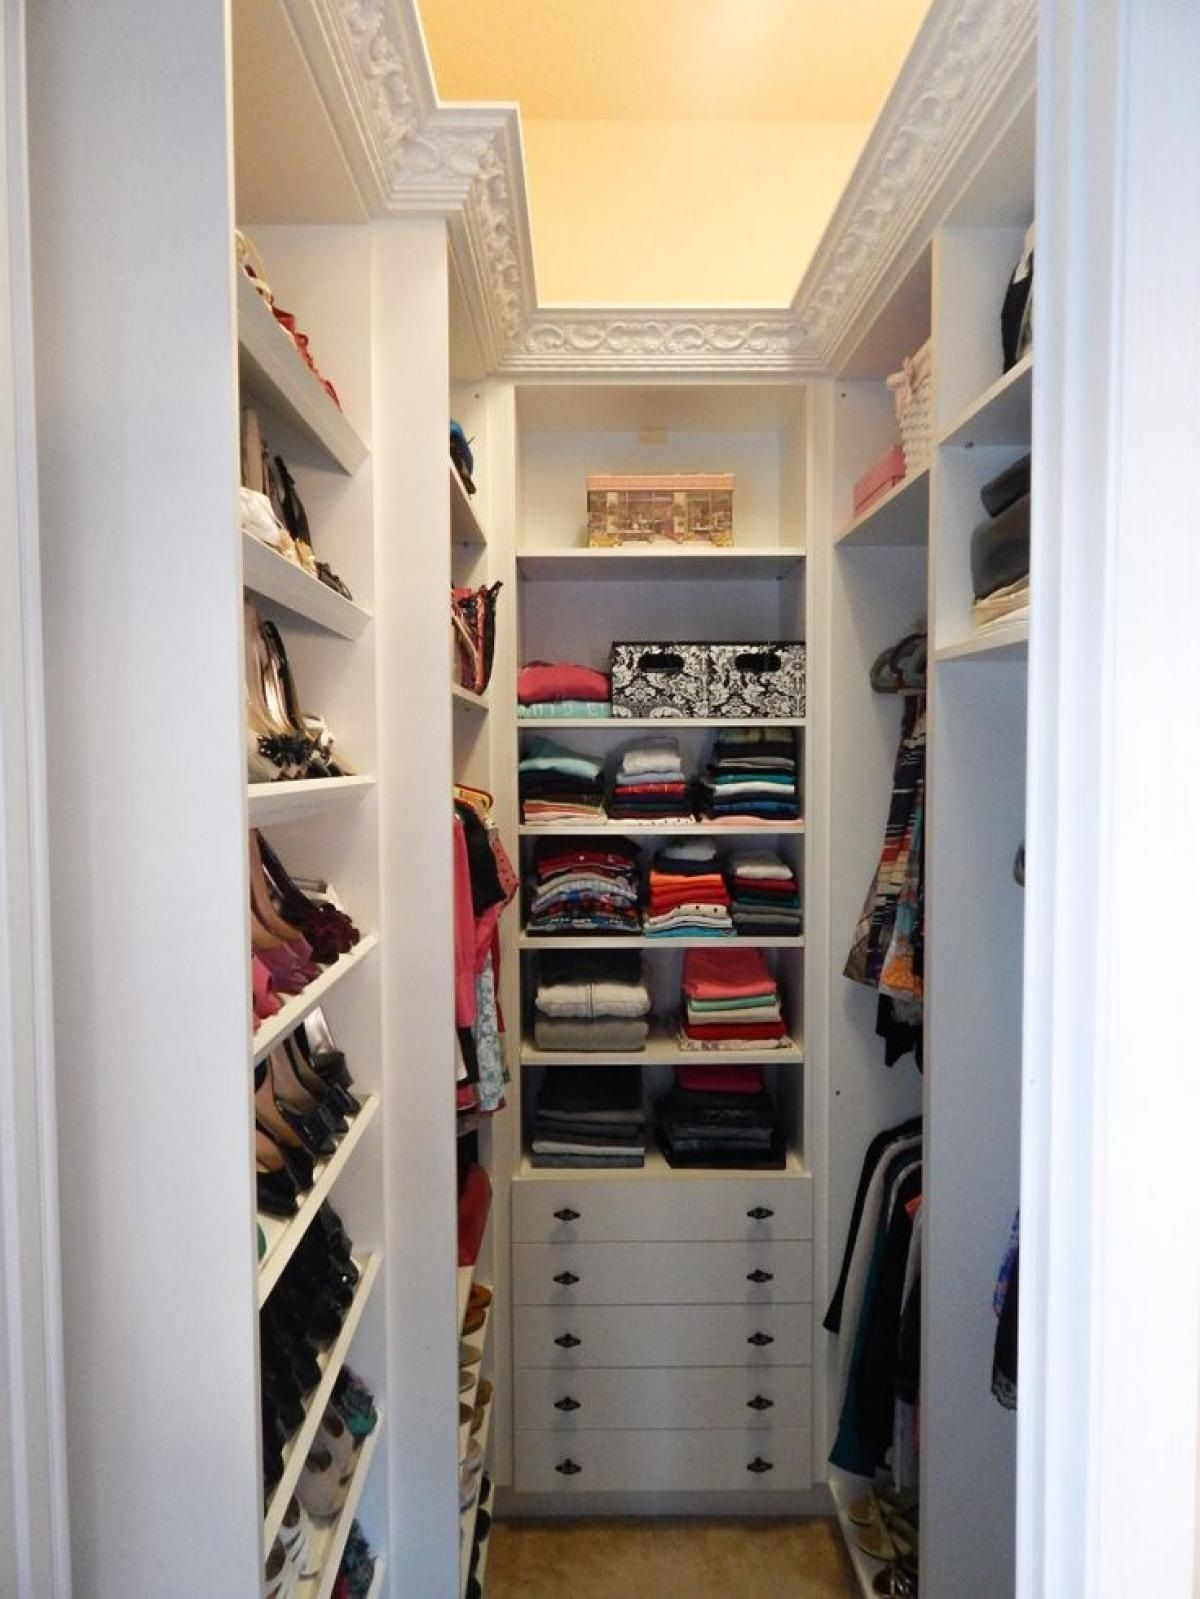 laundry wardrobe images room in walk awesome narrow homes white scemed best closet design dma